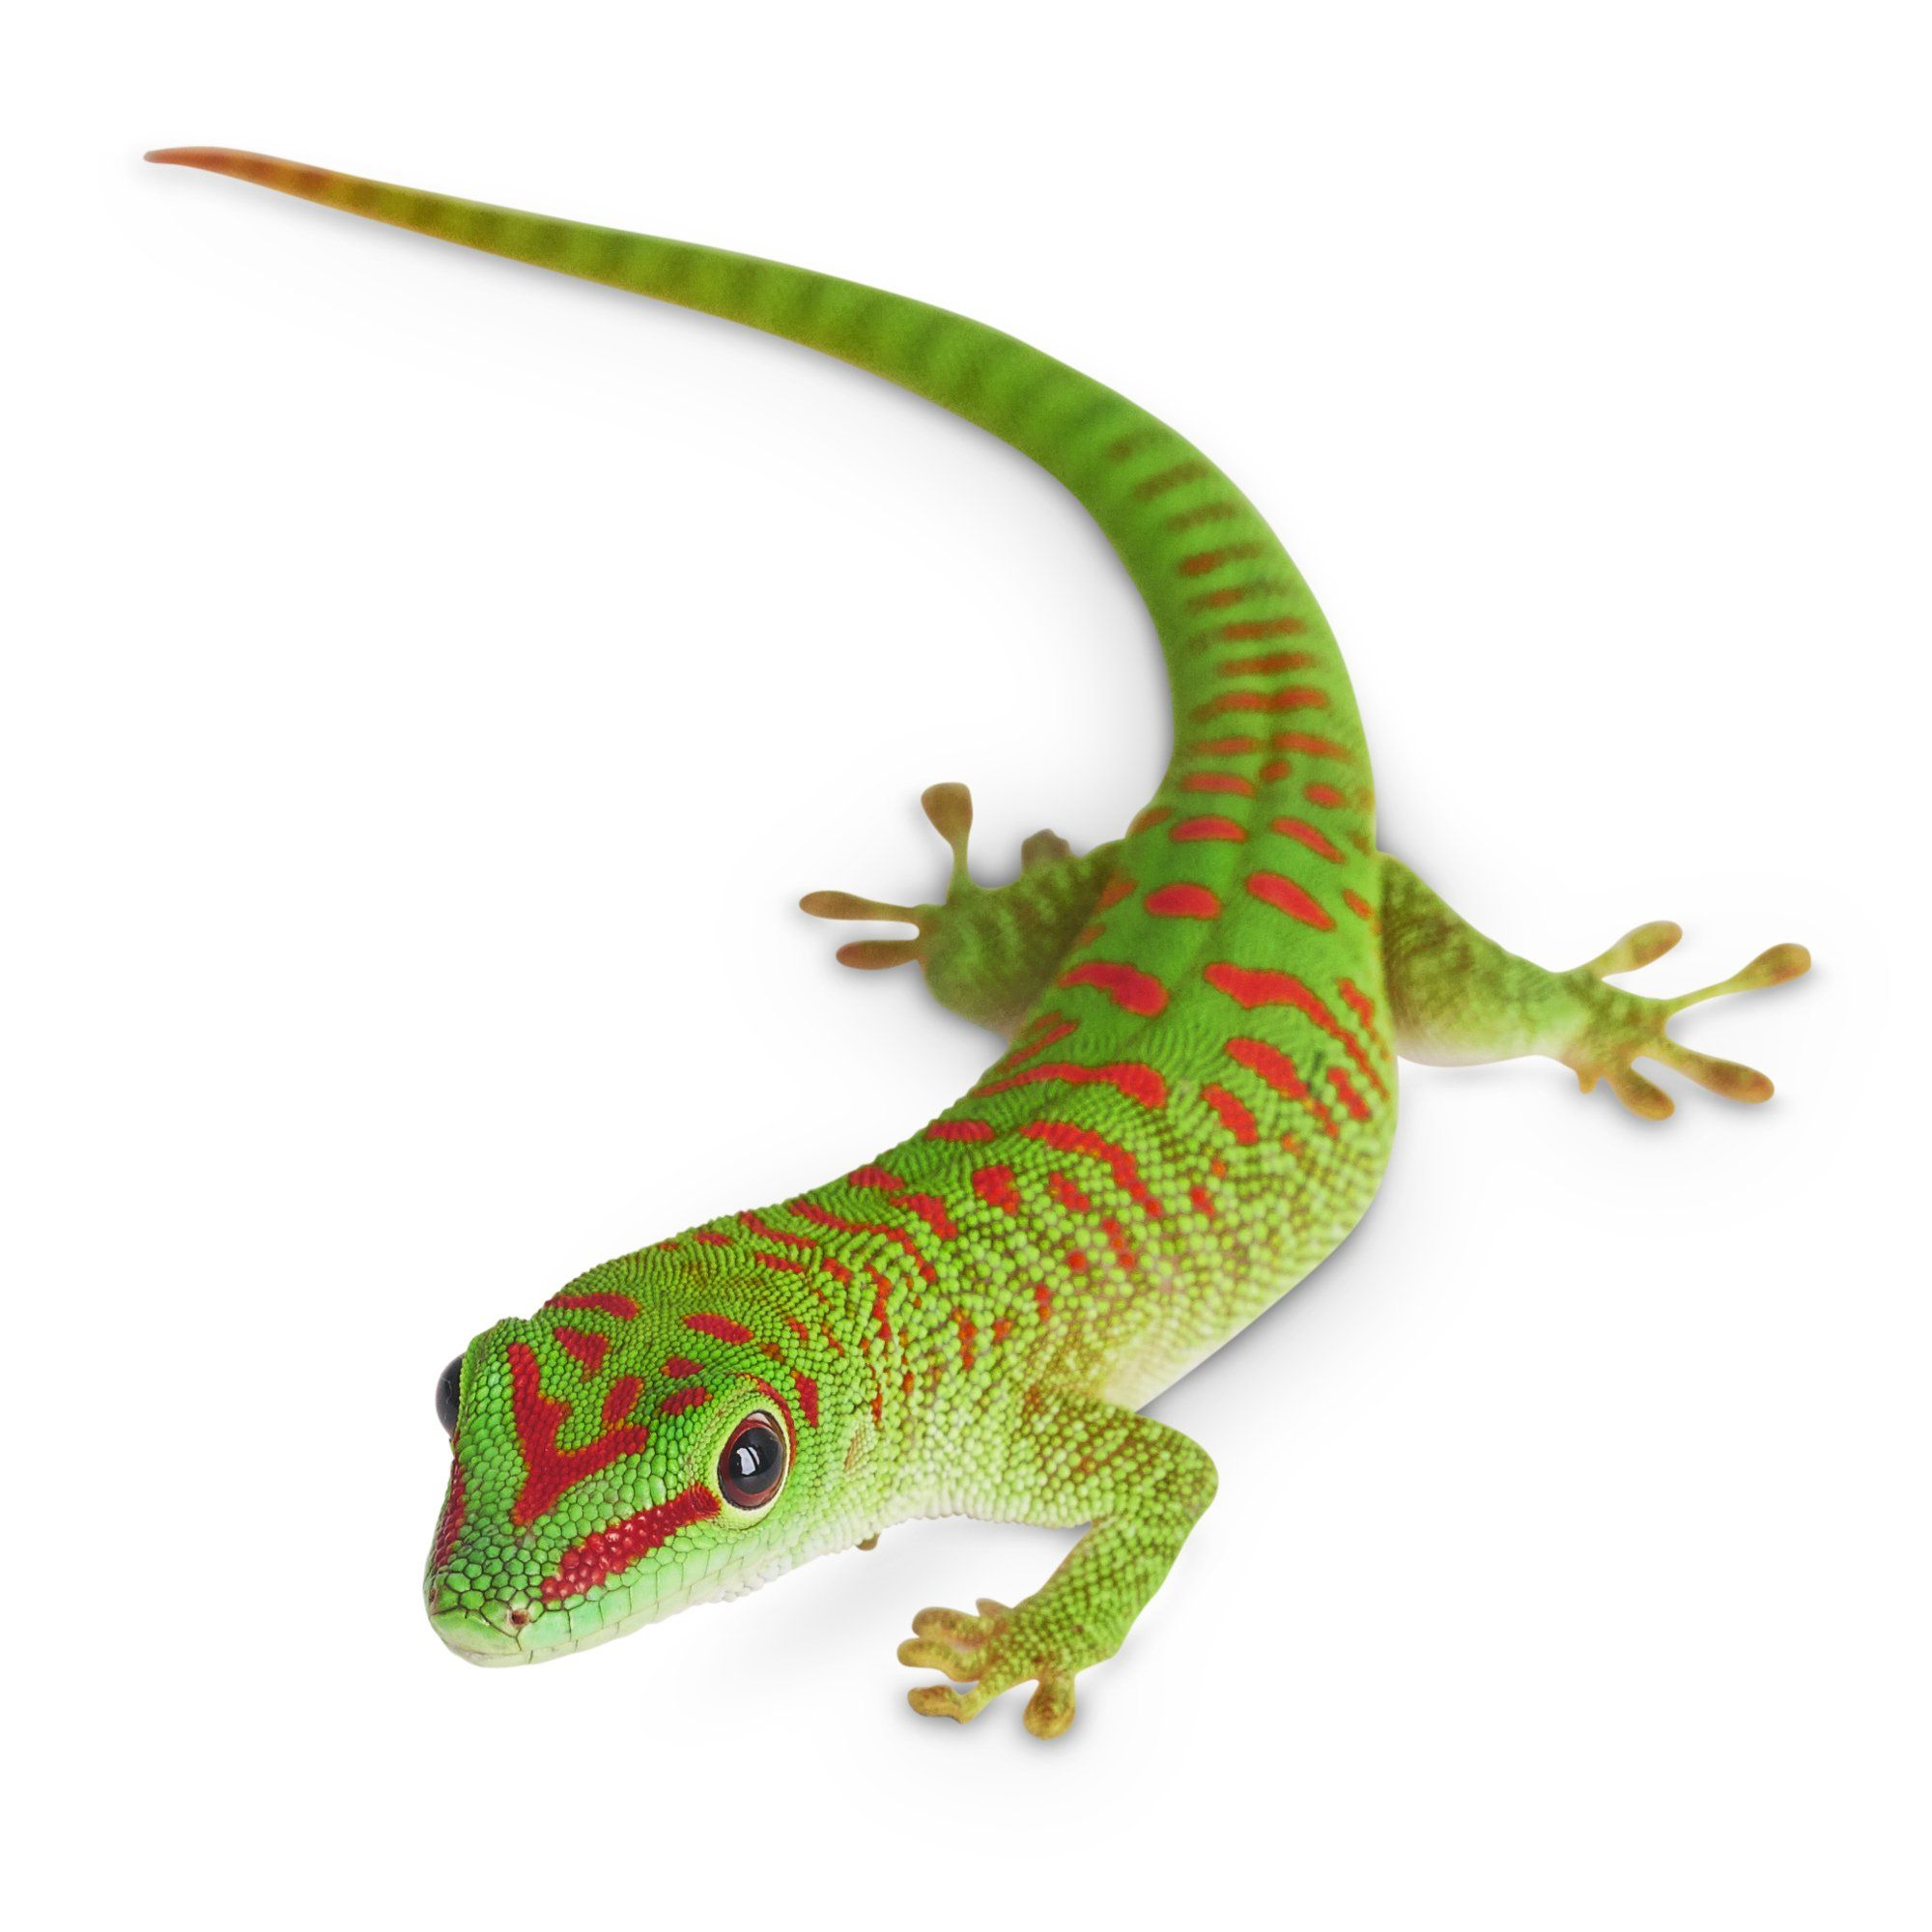 Giant day gecko petco gecko petco dog clothes patterns